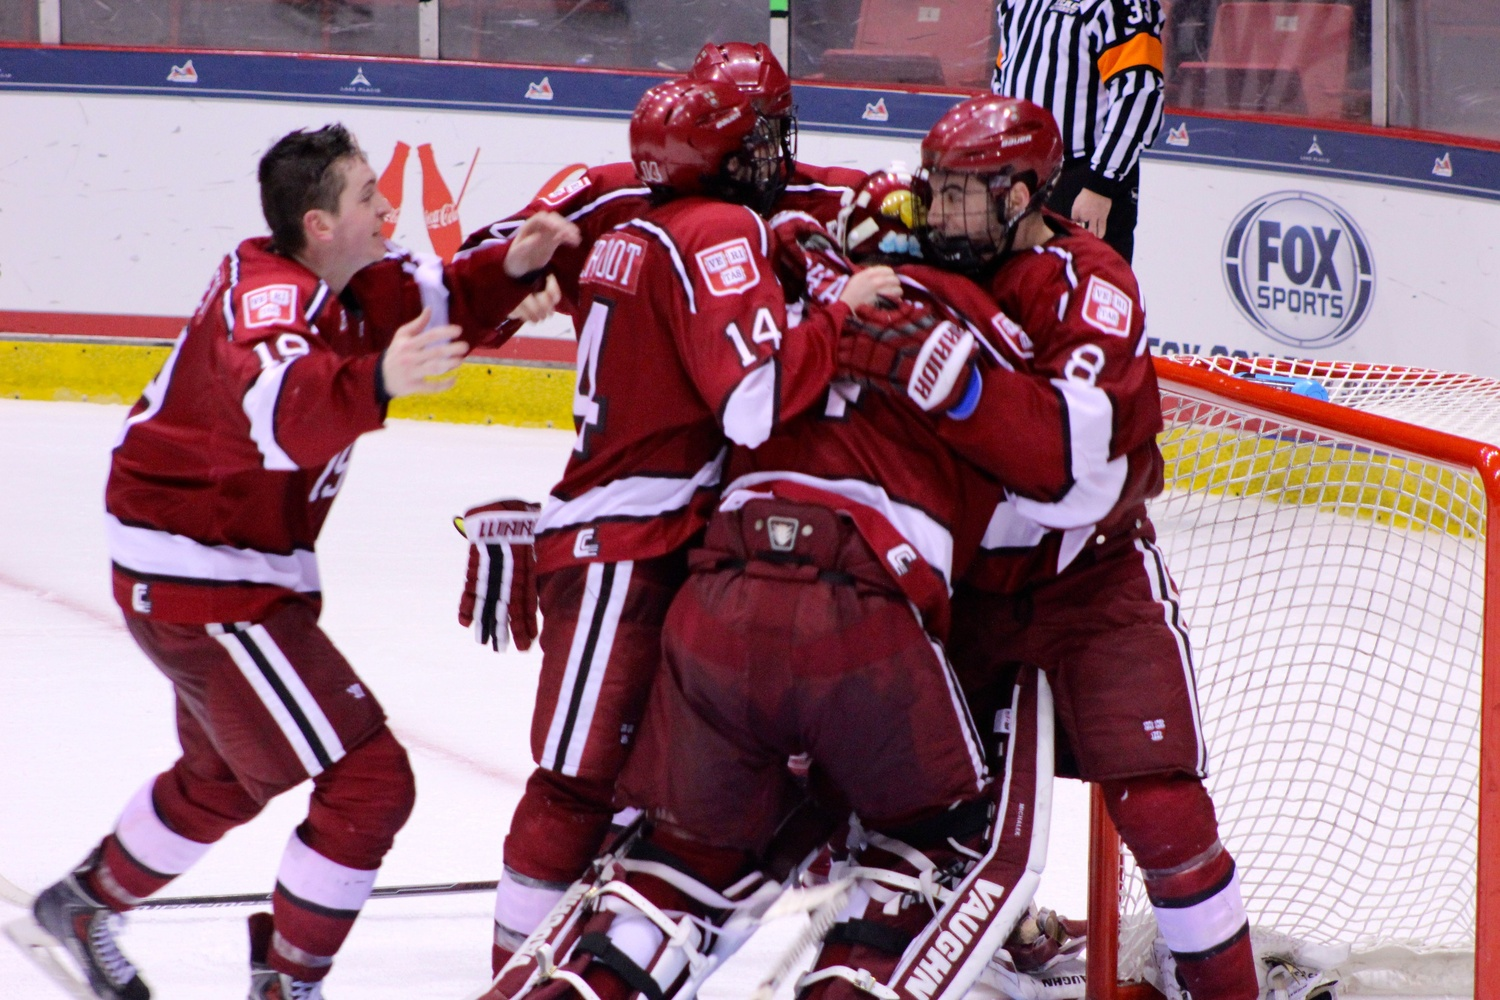 Fourth-year defenseman Patrick McNally (far right) celebrates with goaltender Steve Michalek and junior forward Jimmy Vesey (far left) after beating Colgate, 4-2, in the ECAC tournament final in Lake Placid, N.Y. on March 21.